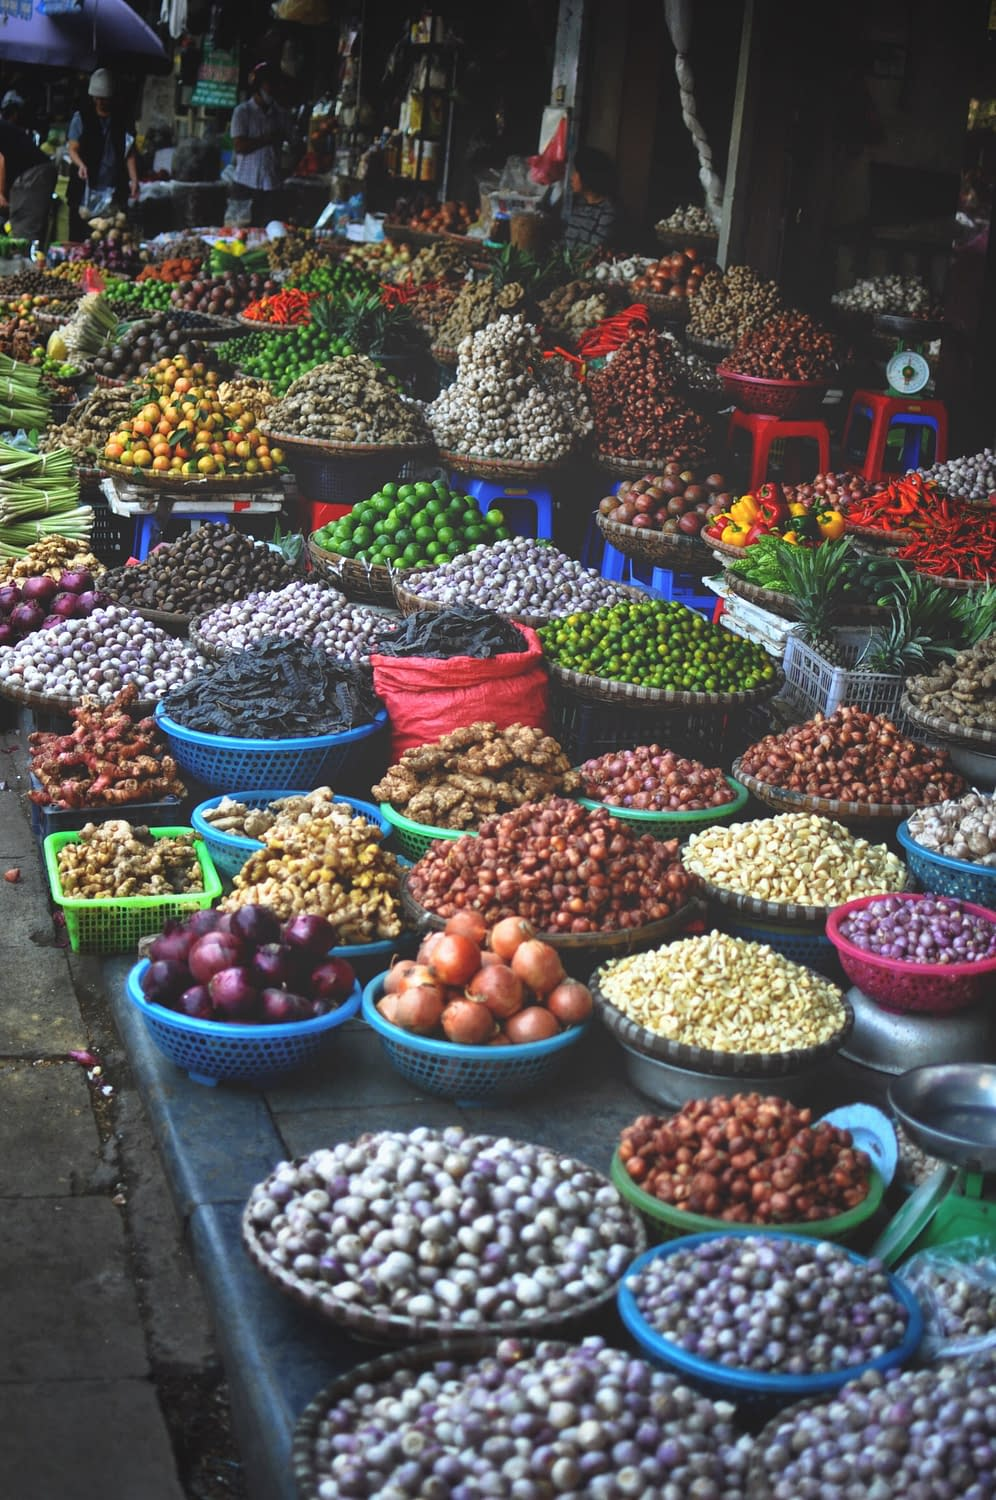 A fresh market on the streets of Hanoi, Vietnam featuring fruit, vegetables and endless food